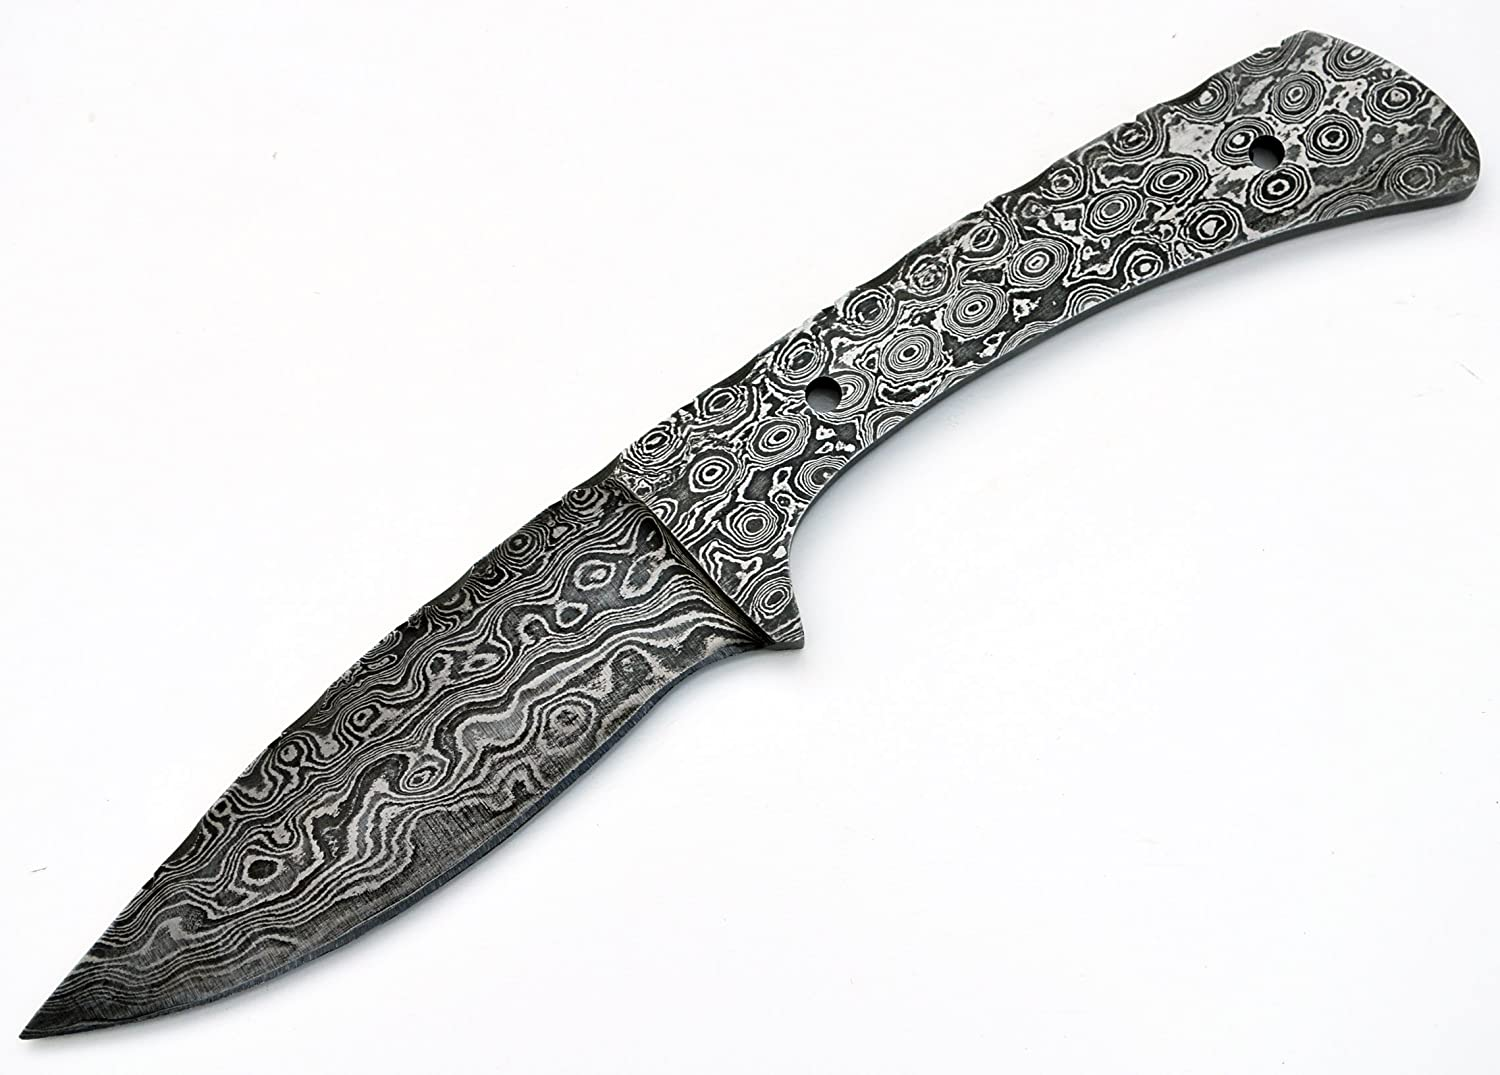 Whole Earth Supply Knife Making Damascus Drop Point Hunting Blank Knives Steel 1095 HC Custom Blade